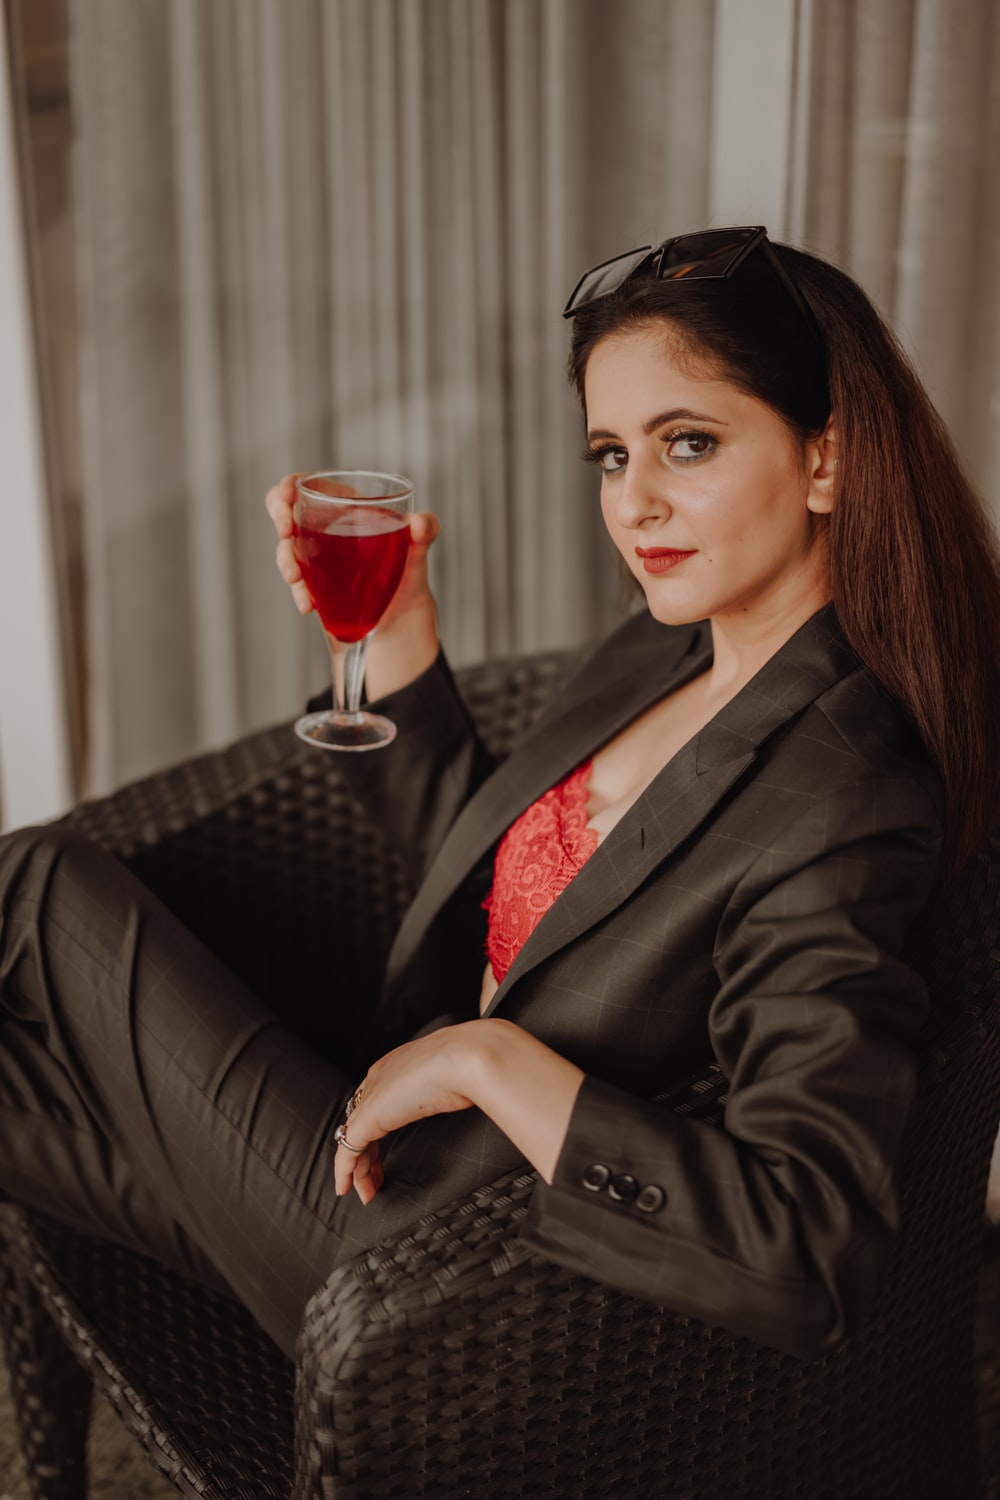 woman in black blazer holding wine glass